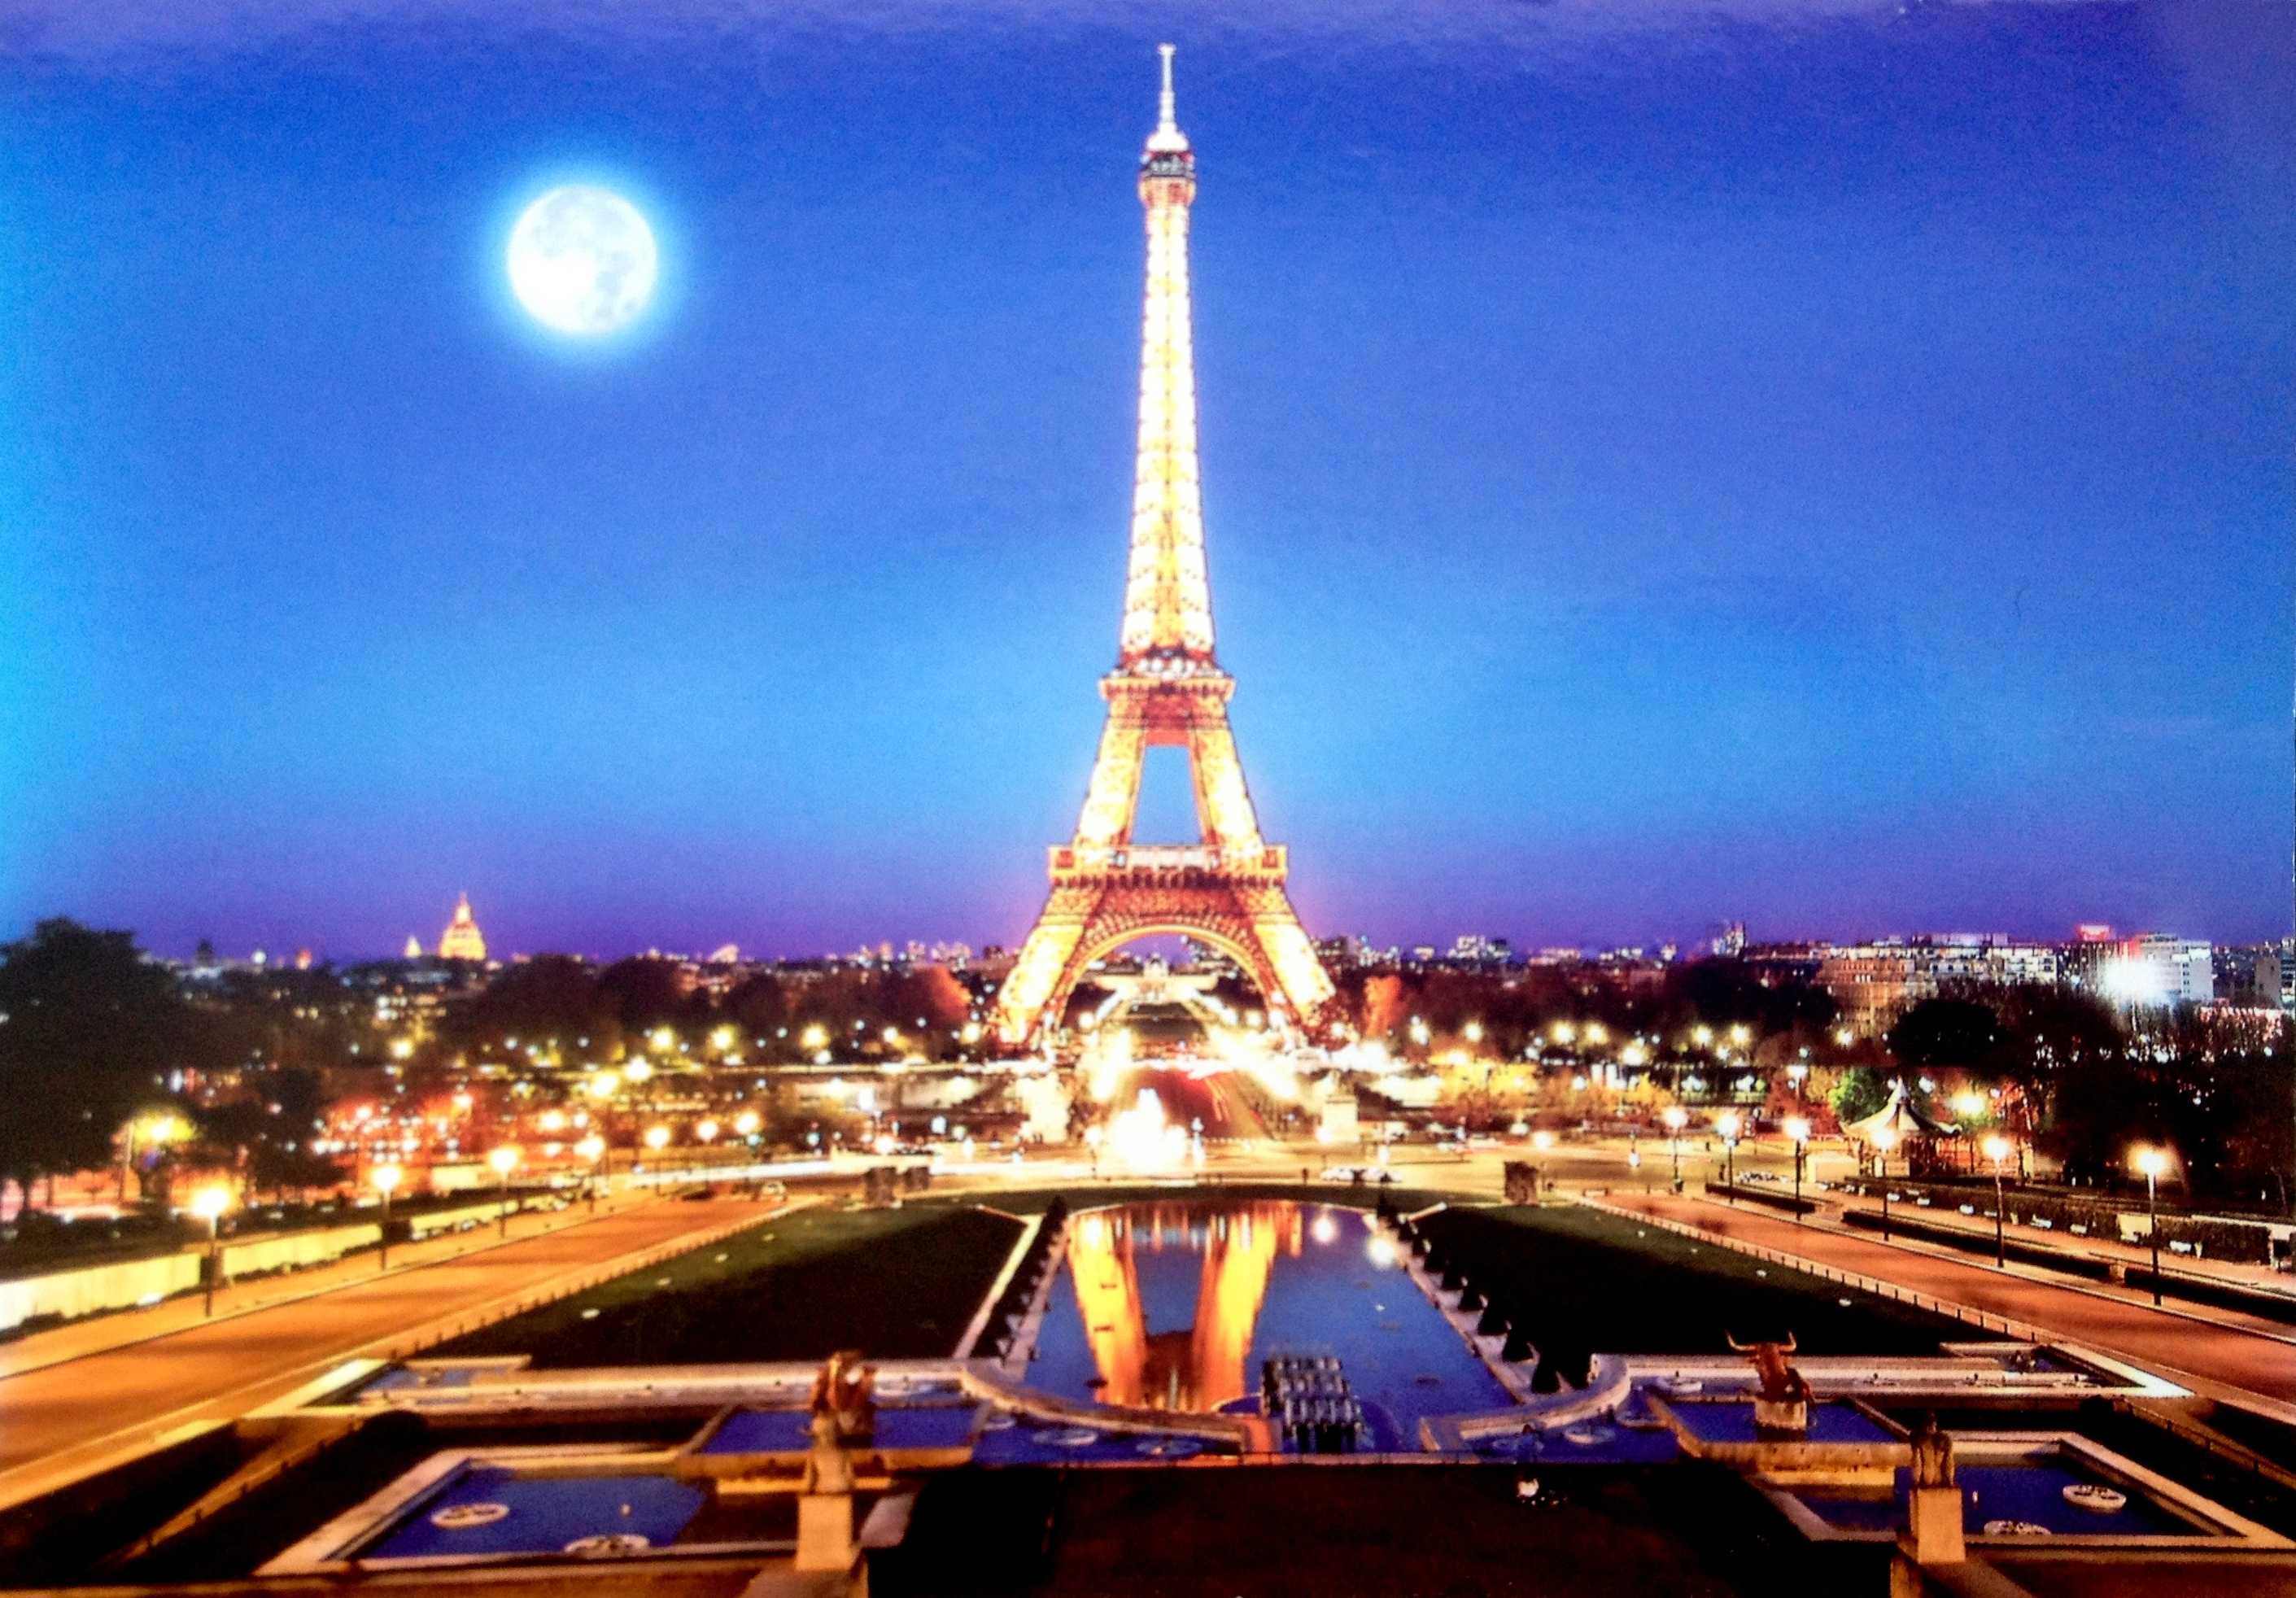 The Eiffel Tower At Night Paris